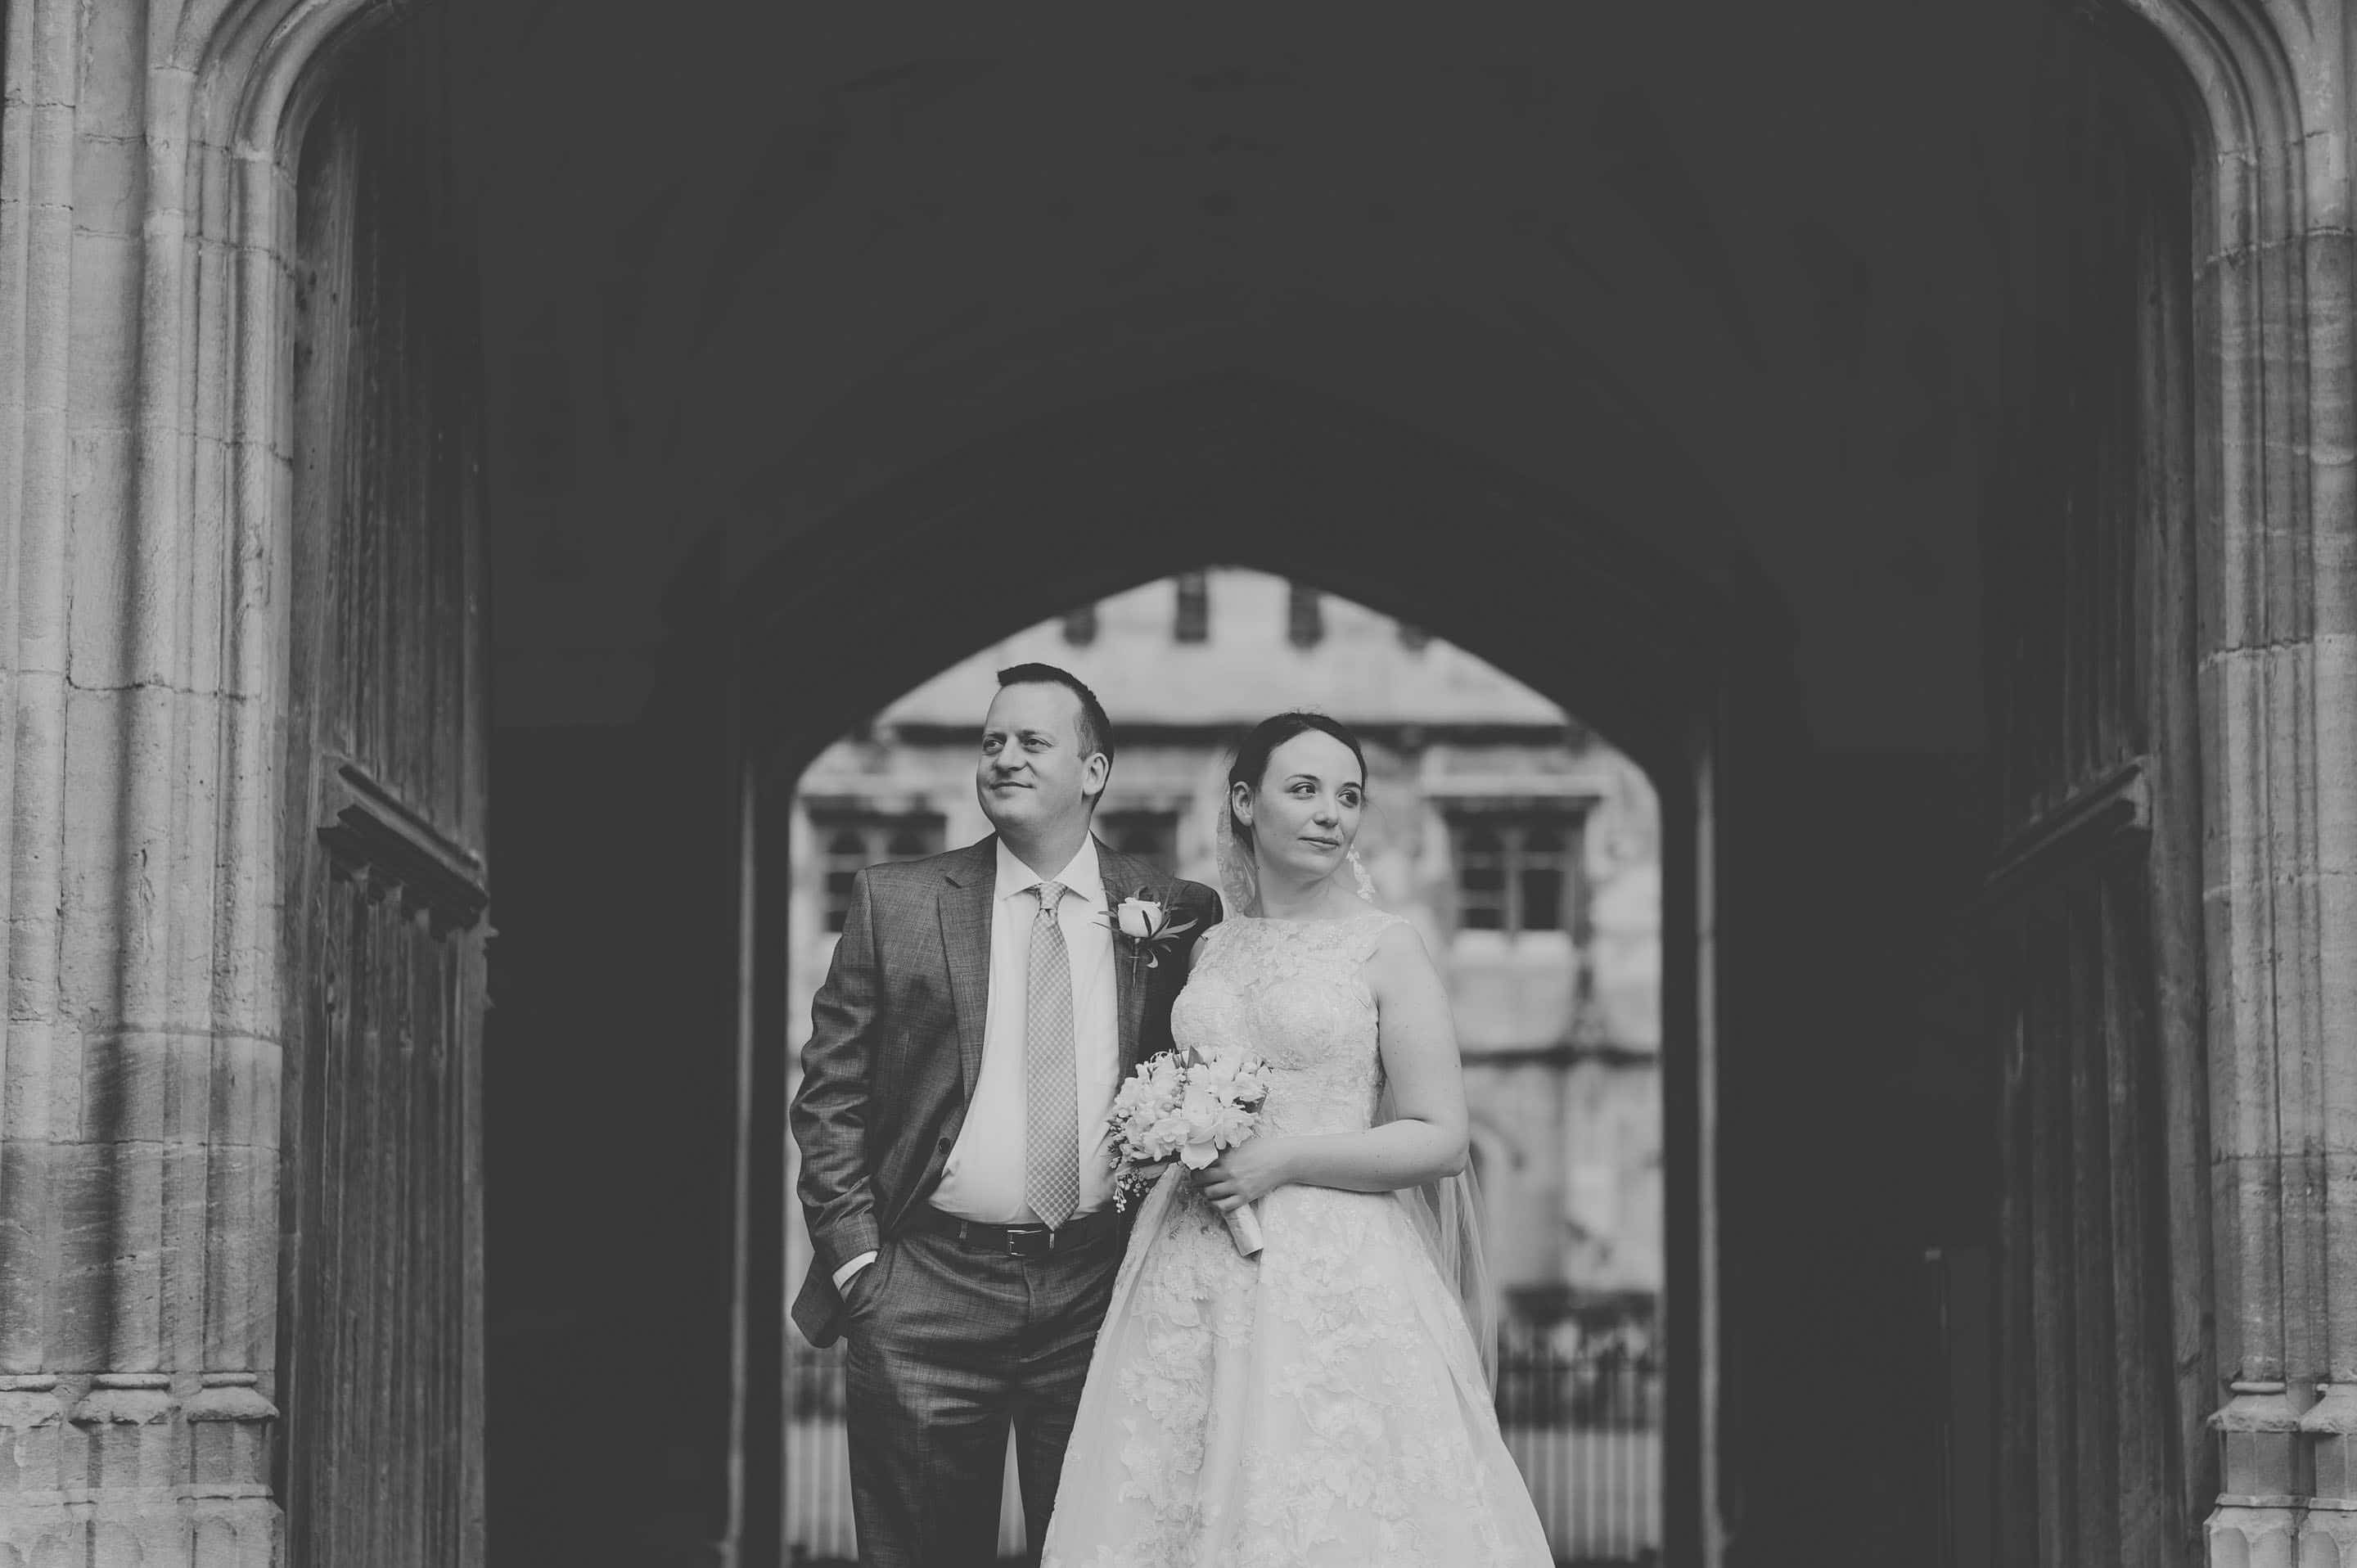 wedding at magdalen college in oxford 5 - Tommie + Virginia | Wedding at Magdalen College in Oxford